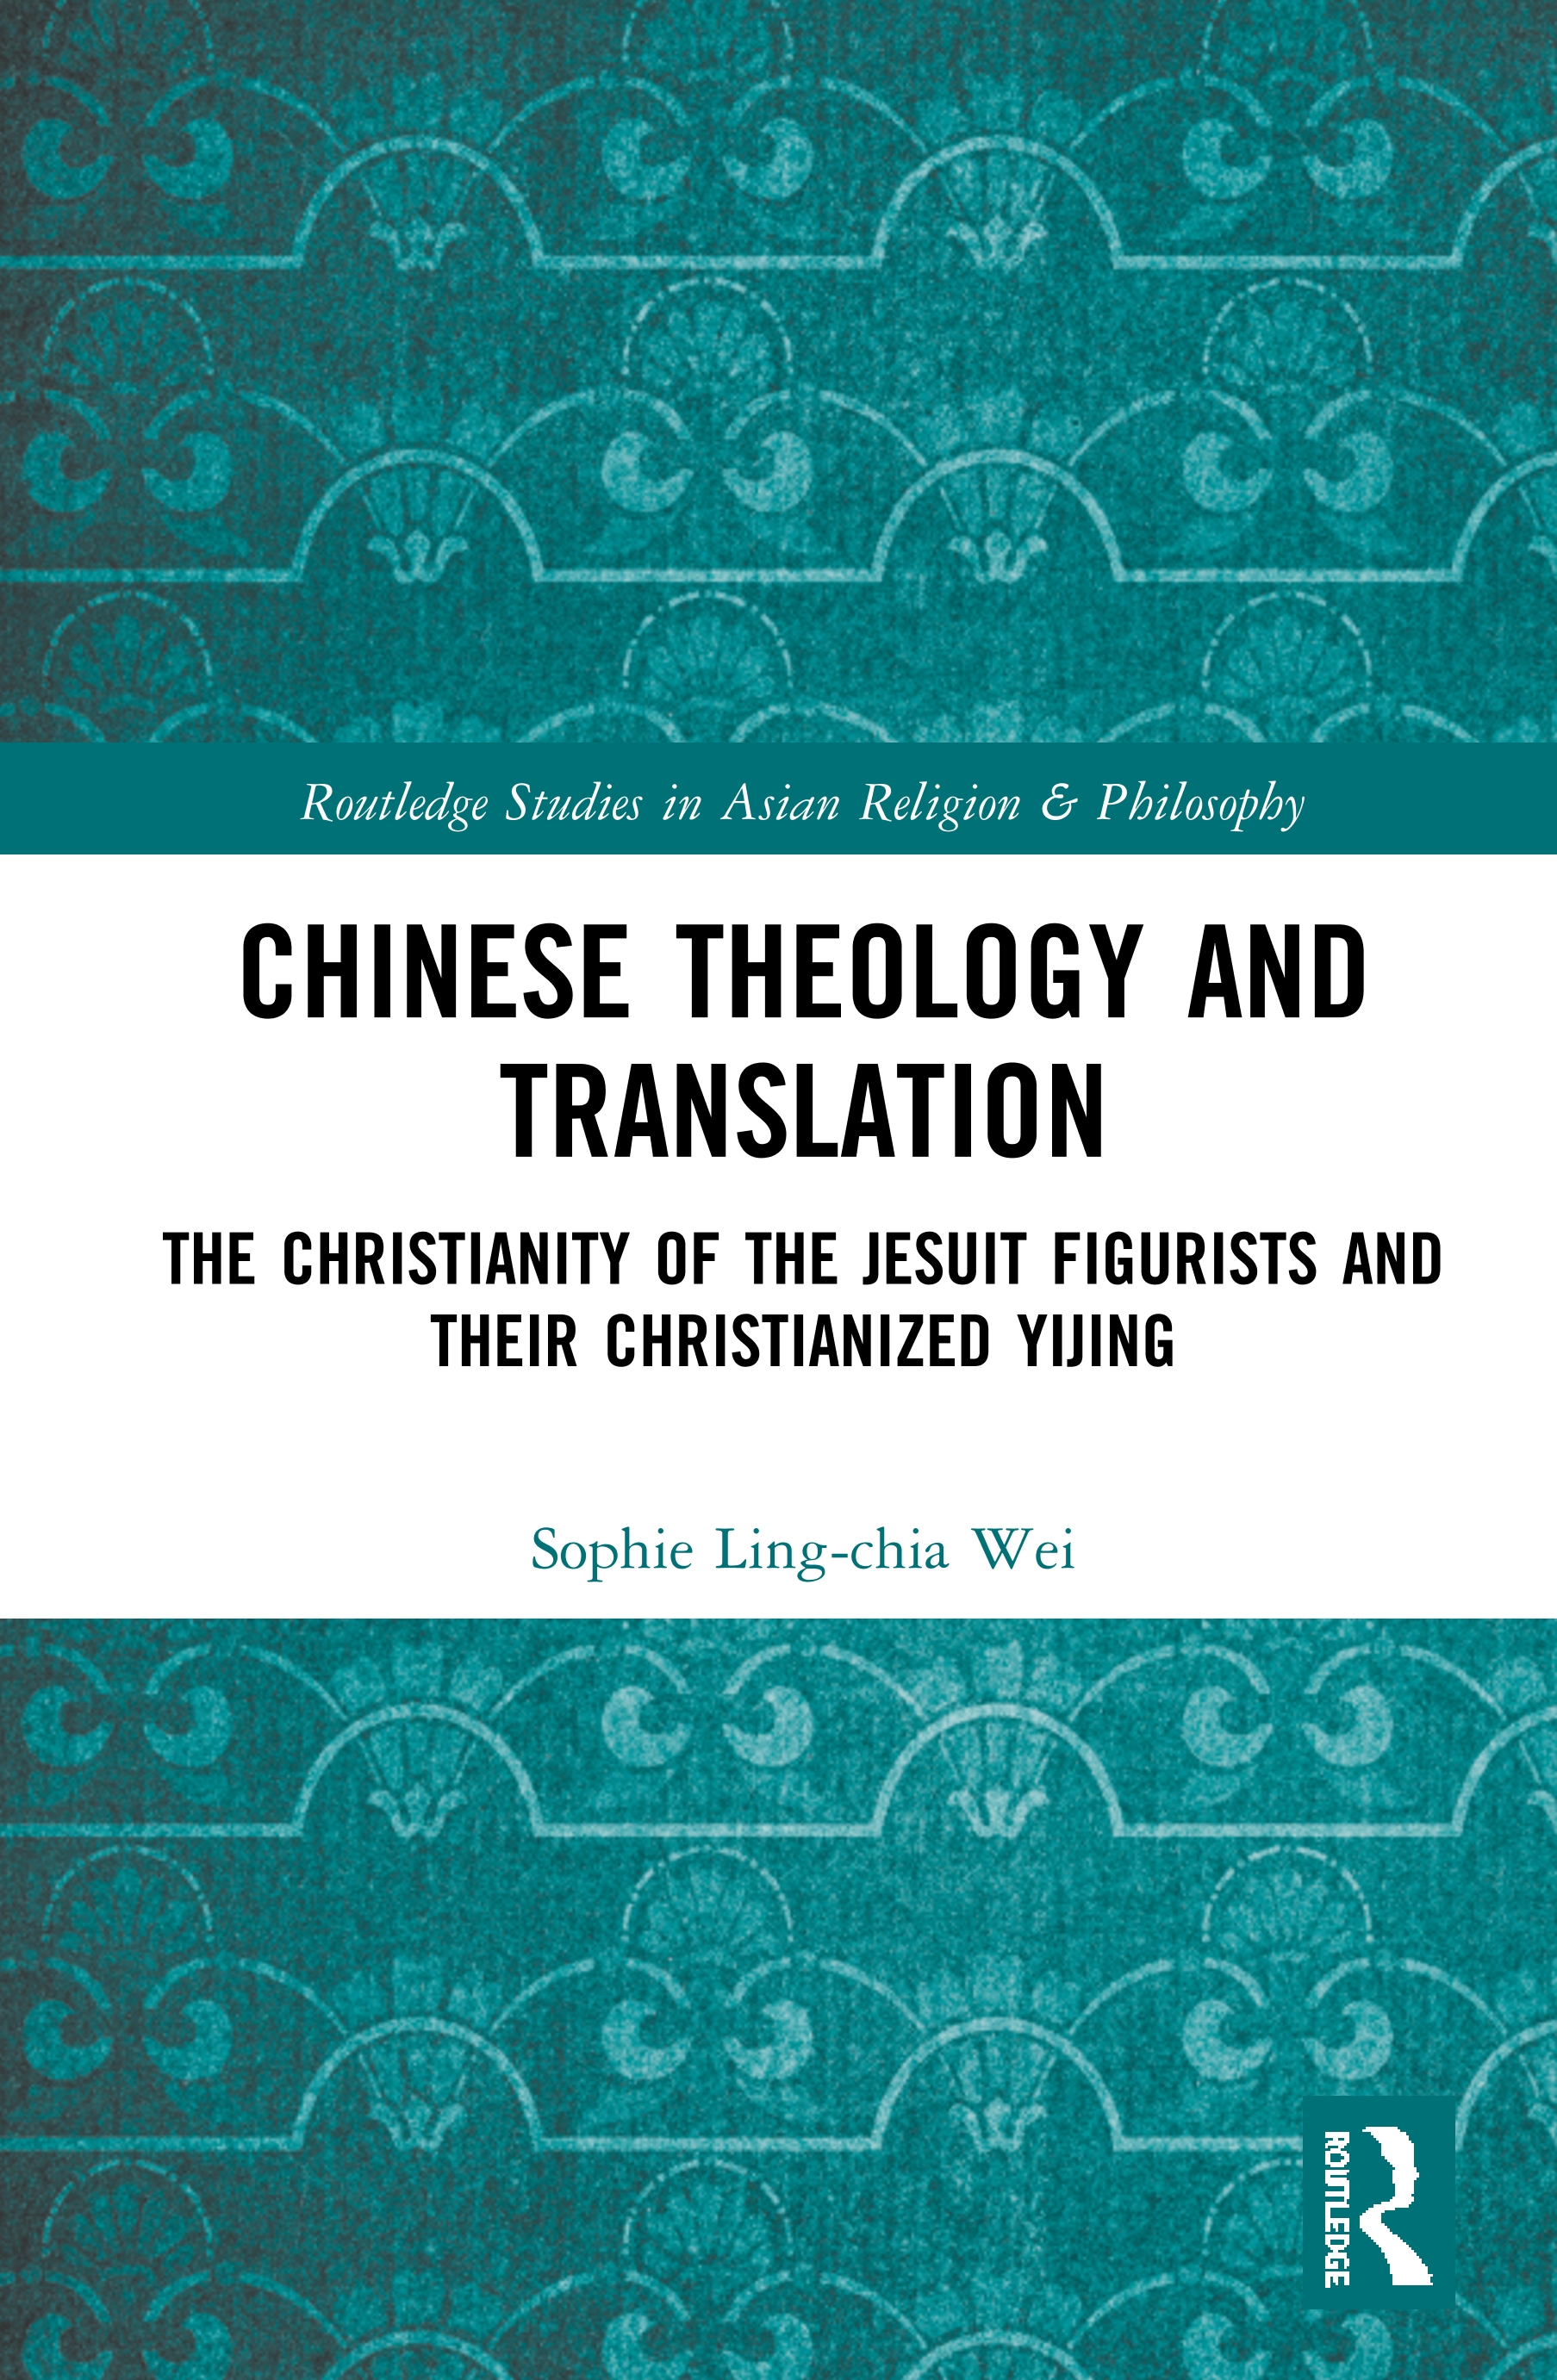 Sophie Ling-chia Wei, Chinese Theology and Translation: The Christianity of the Jesuit Figurists and their Christianized Yijing (2020)